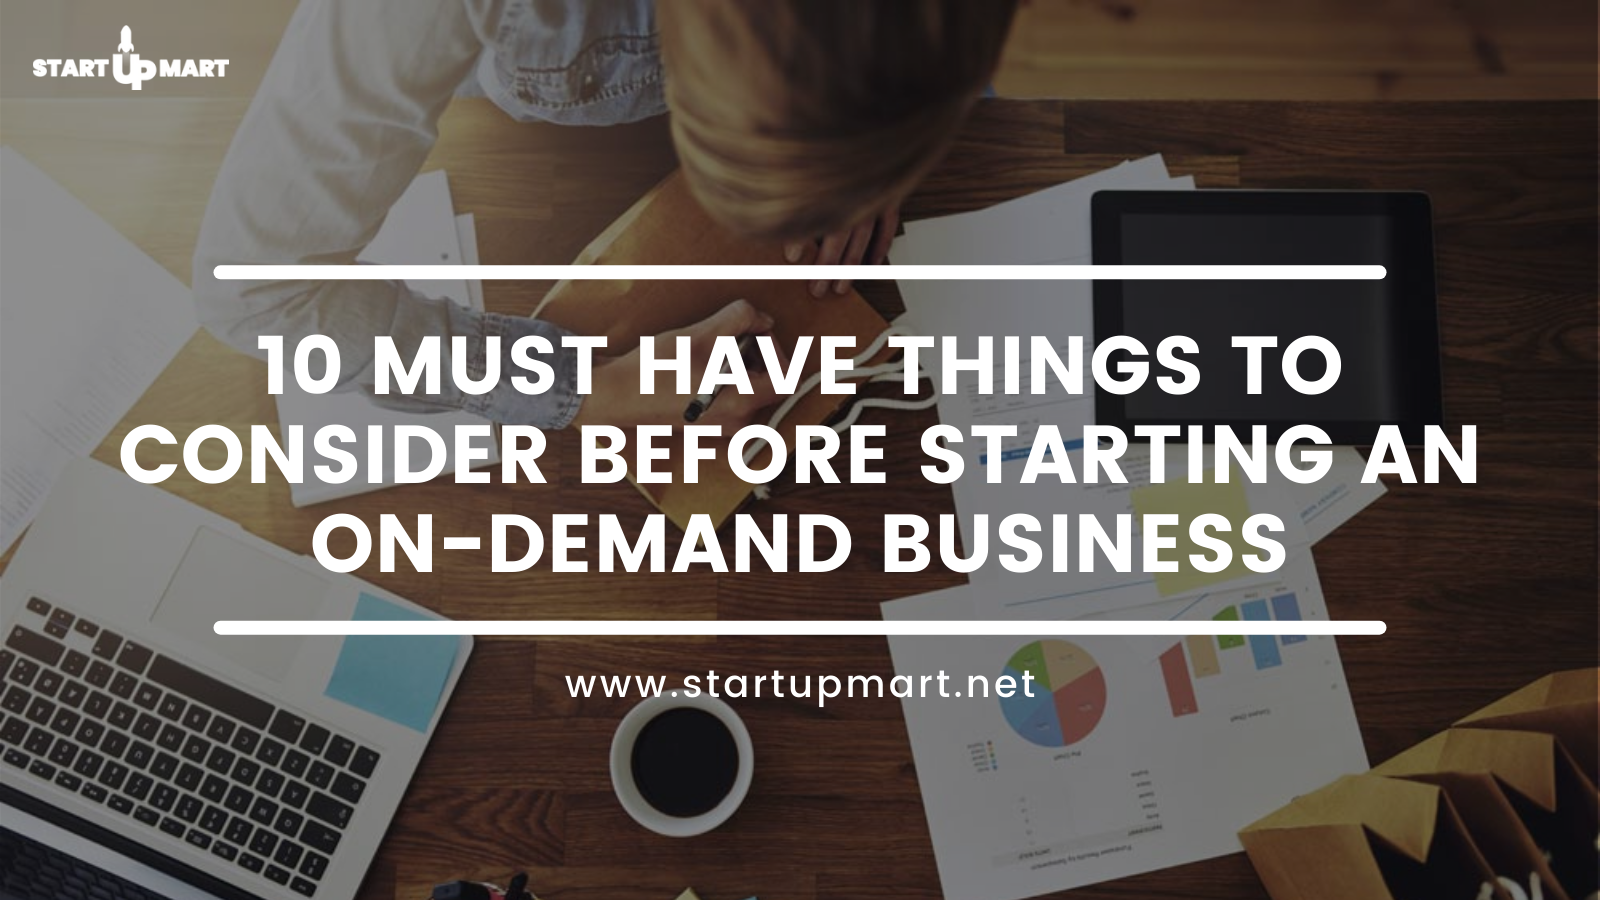 10 Must Have Things to Consider Before Starting an On-Demand Business